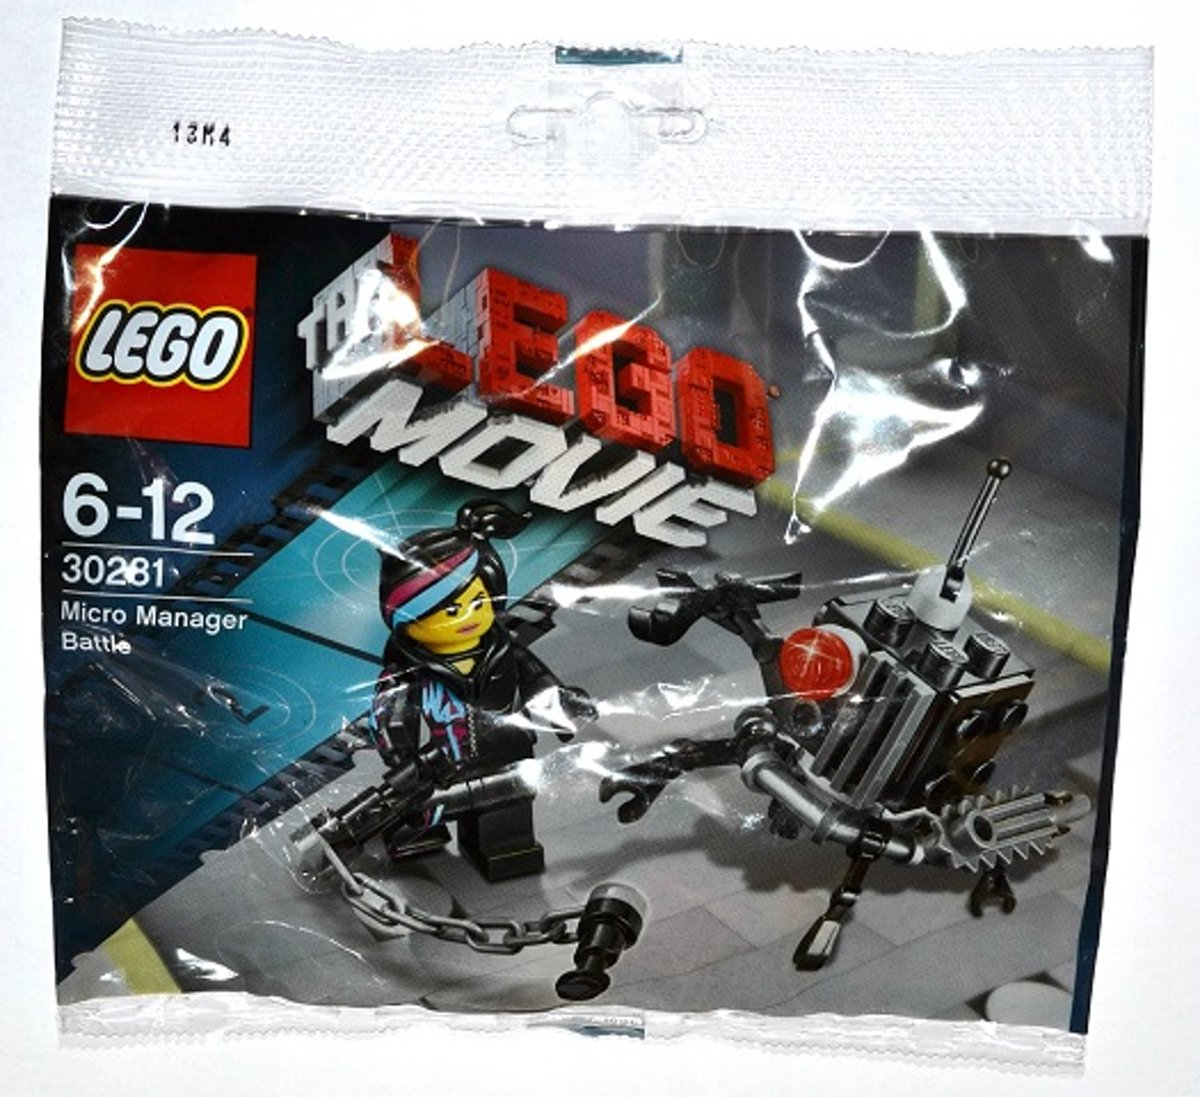 LEGO 30281 Micro Manager Battle polybag